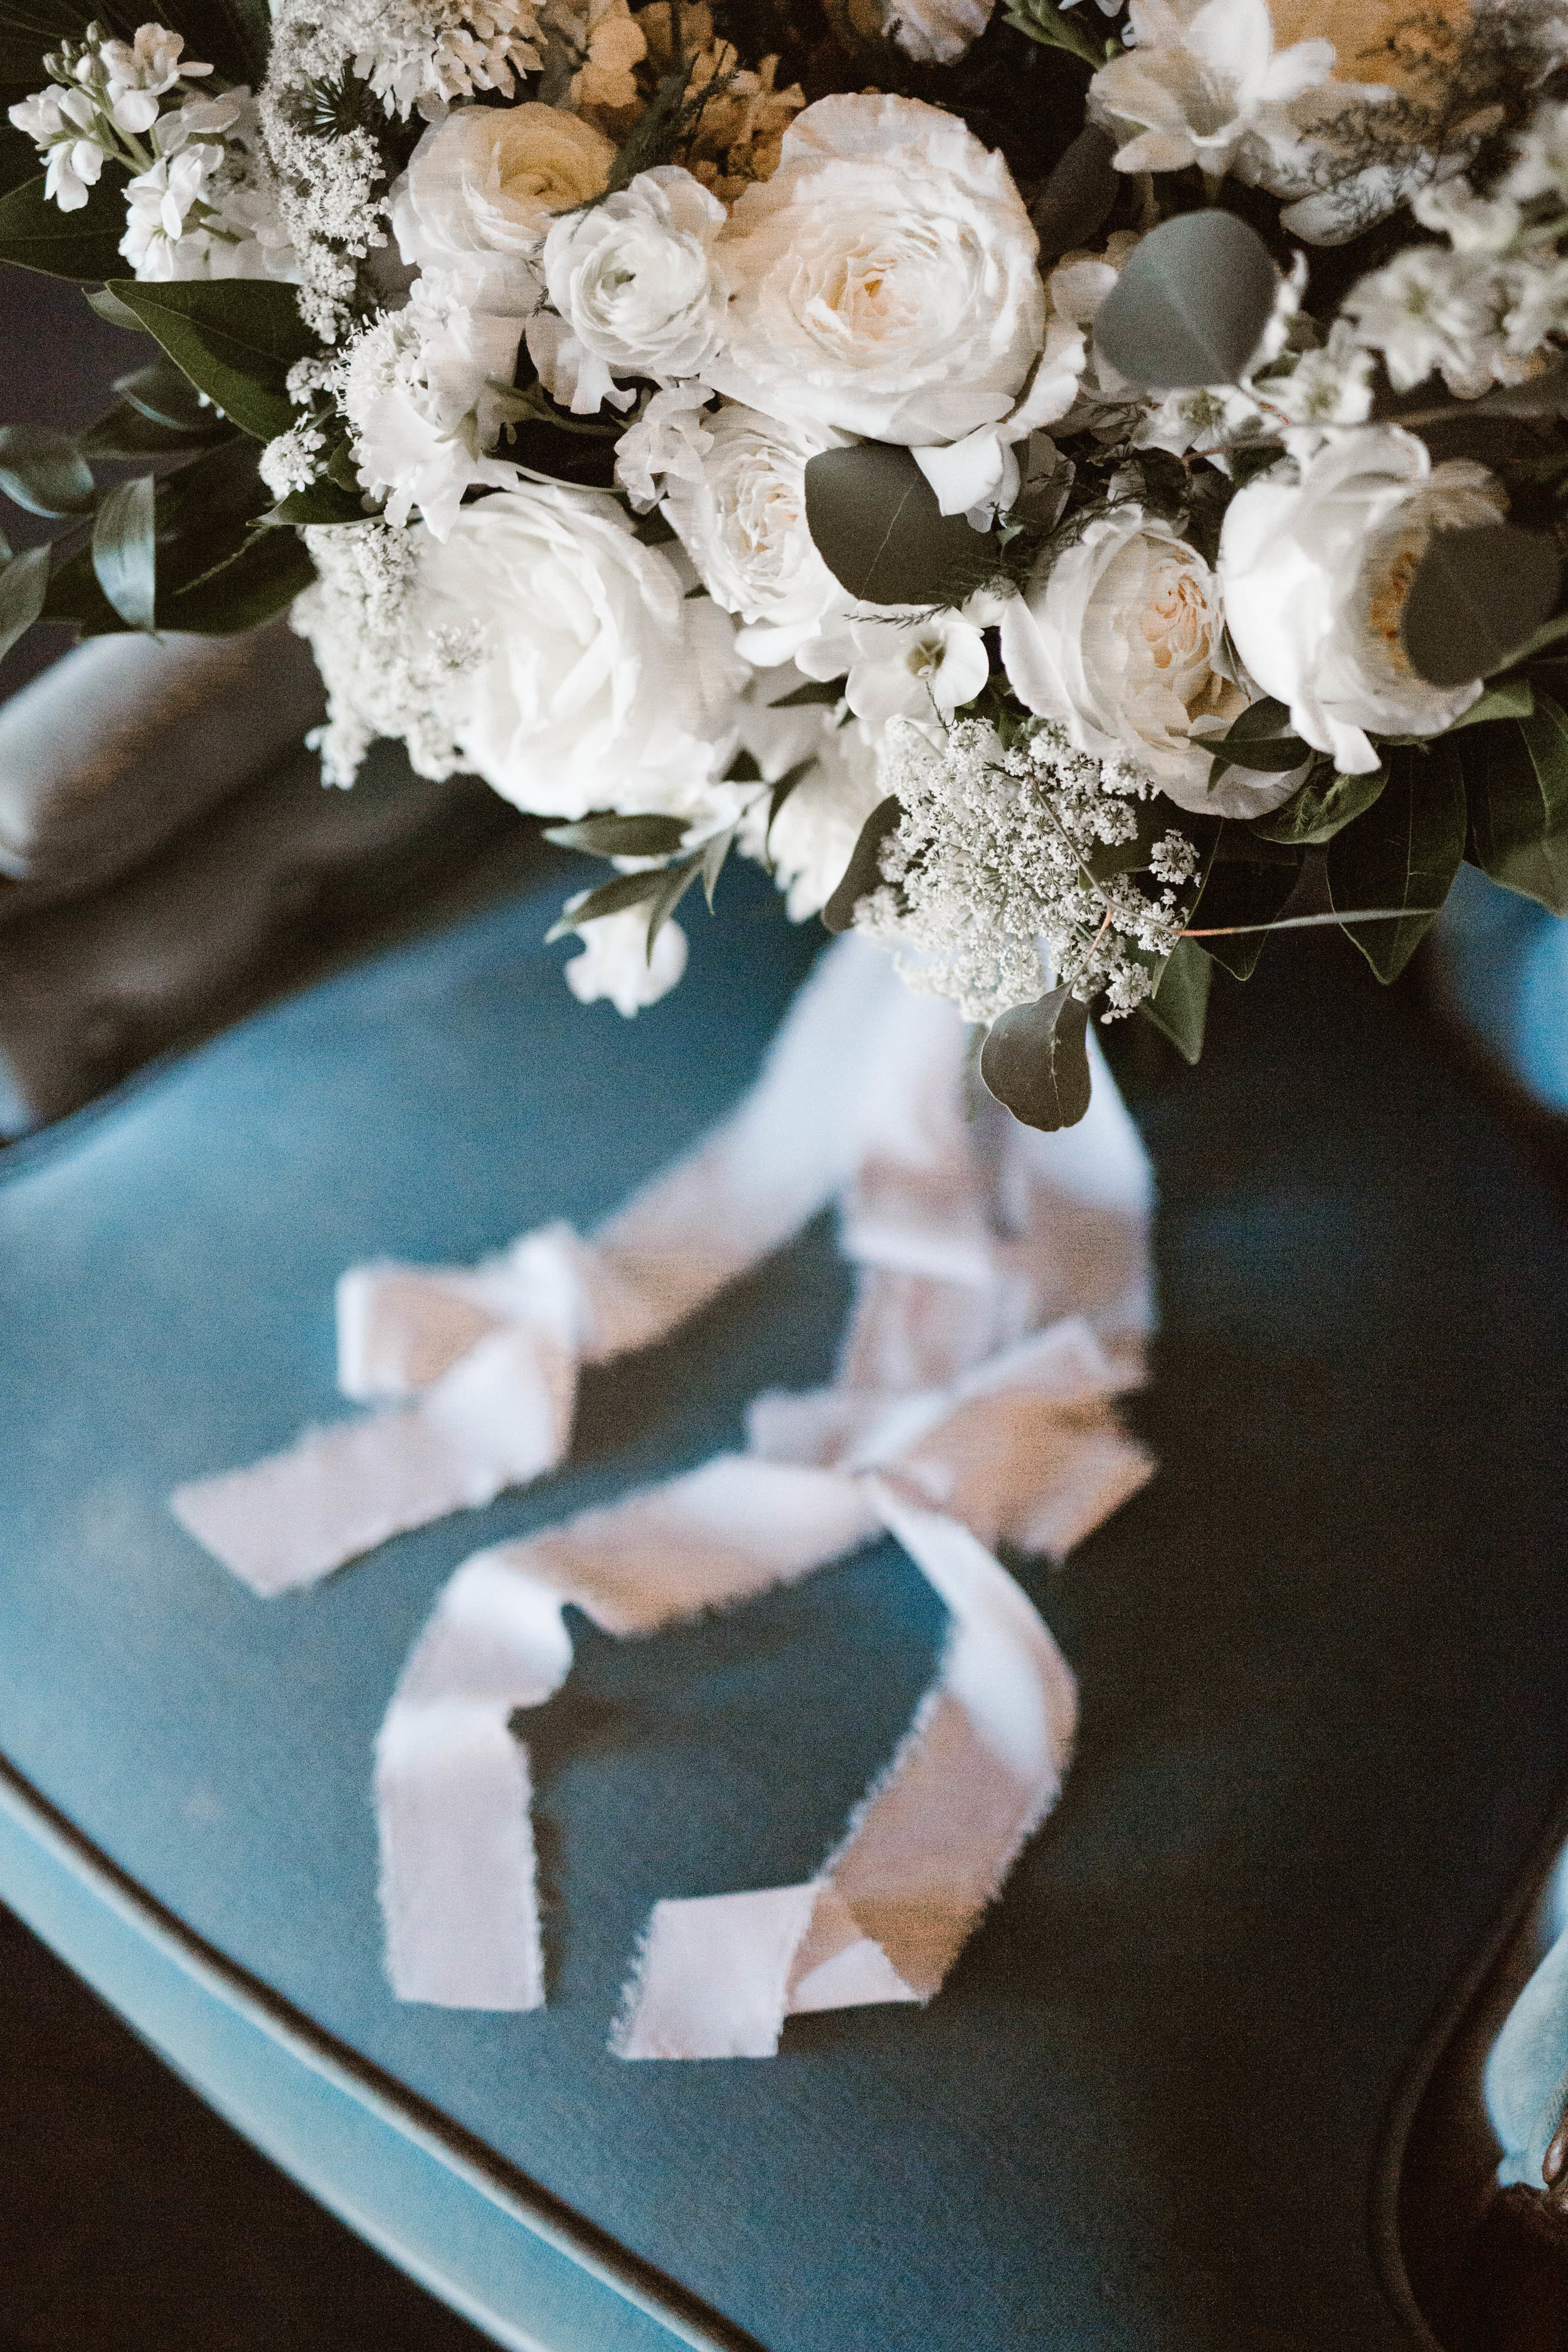 Knoxville Floral Deign // Relix: Knoxville's Modern Downtown Wedding Venue